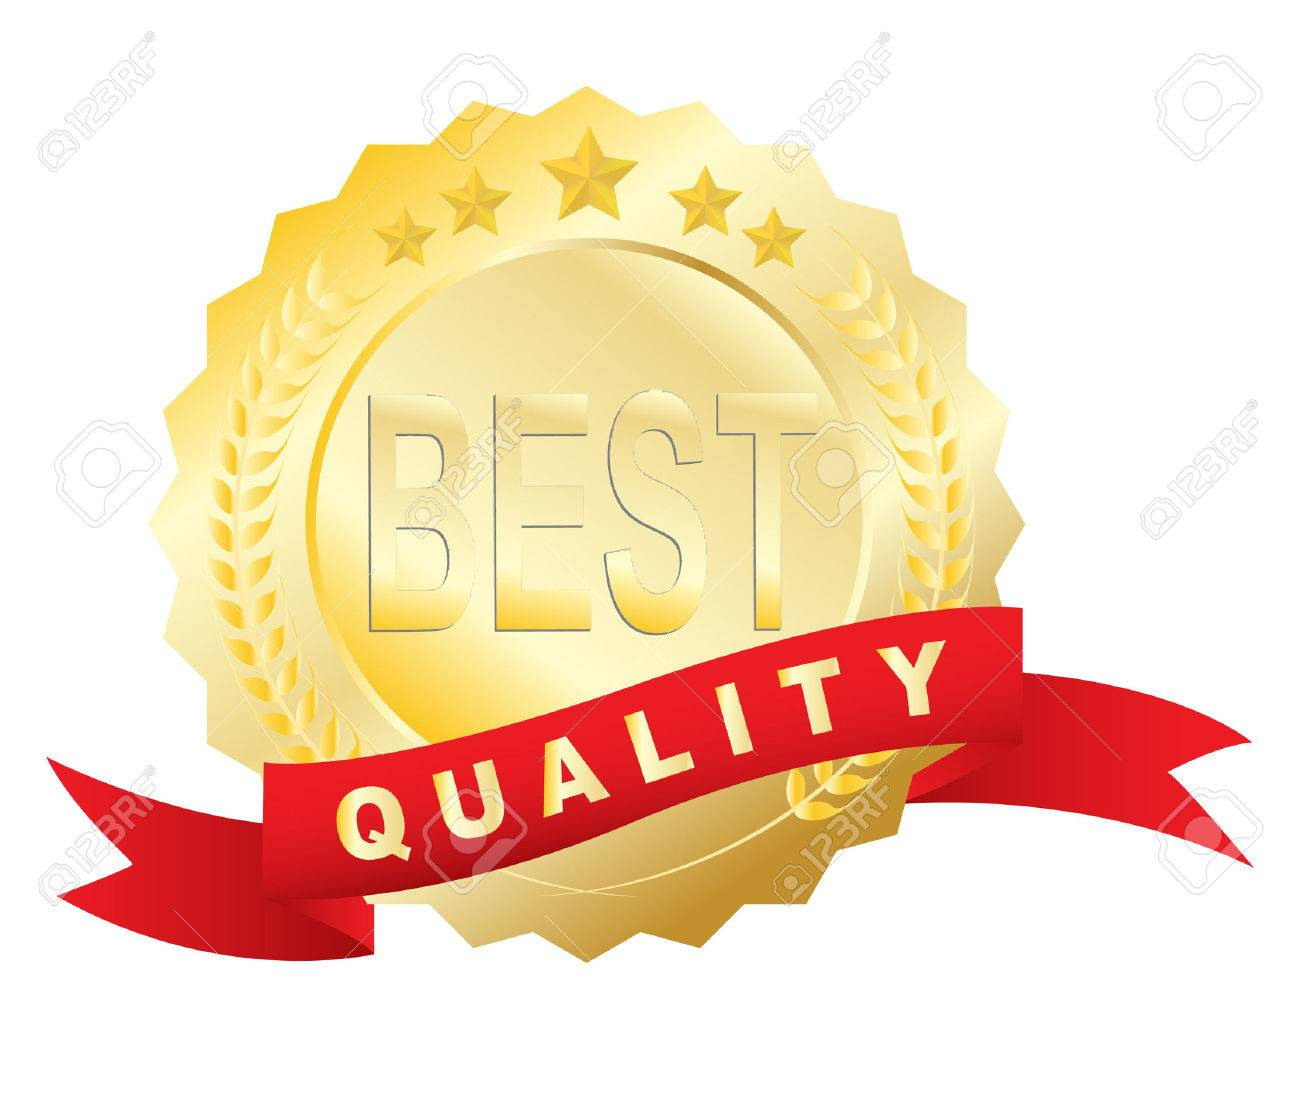 quality Stock Vector - 10172864